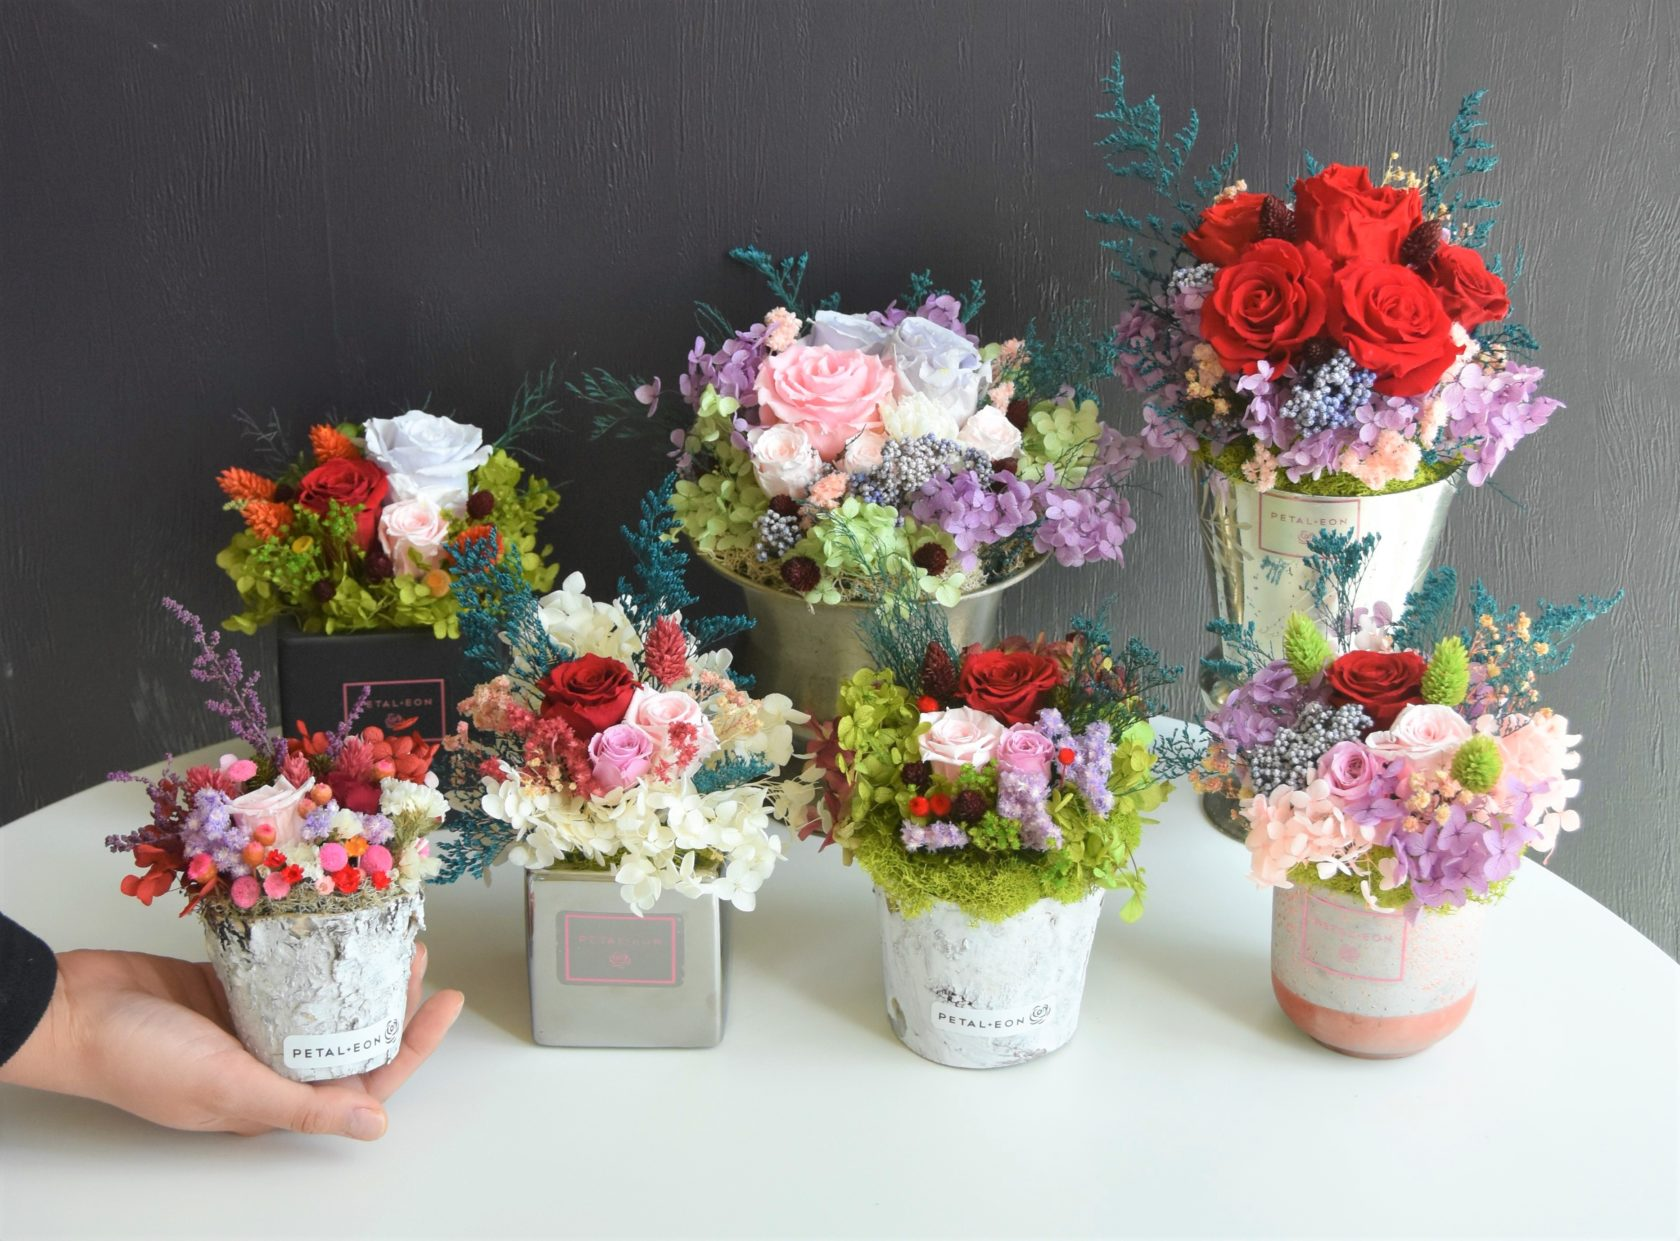 Make A Diy Floral Arrangement With Real Flowers That Last A Year